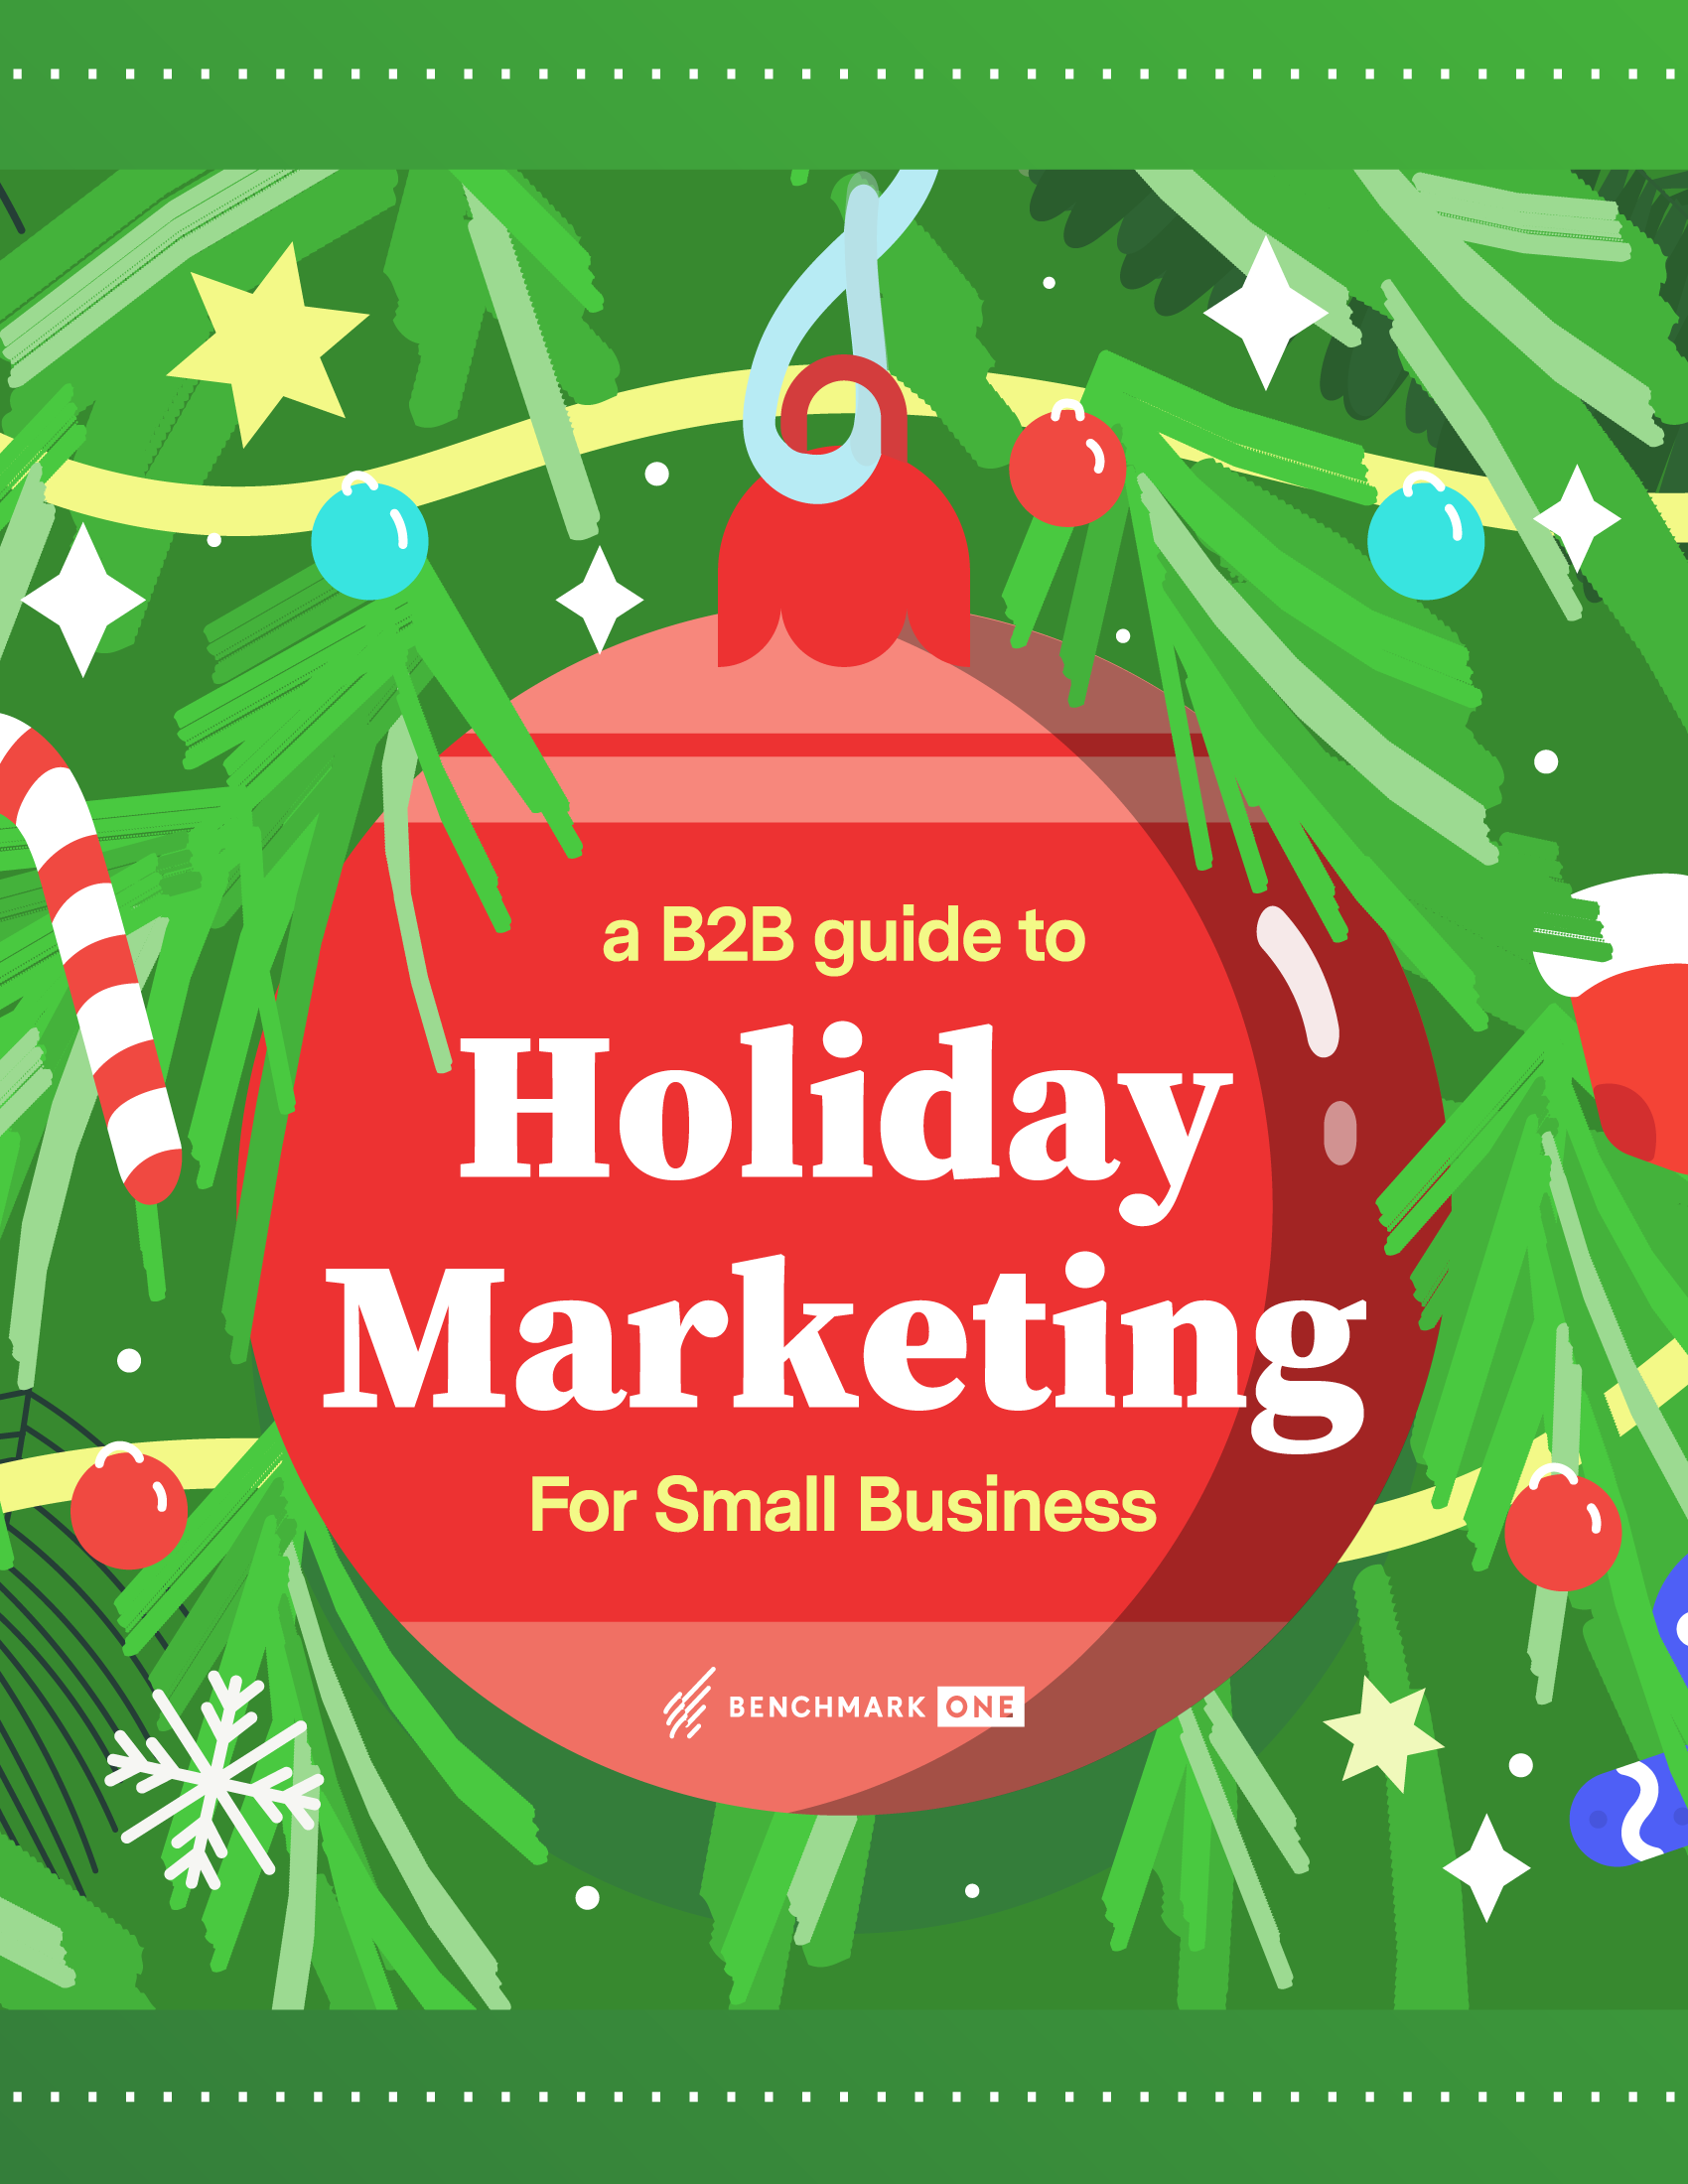 Resource-Image-The-B2B-Holiday-Marketing-Guide